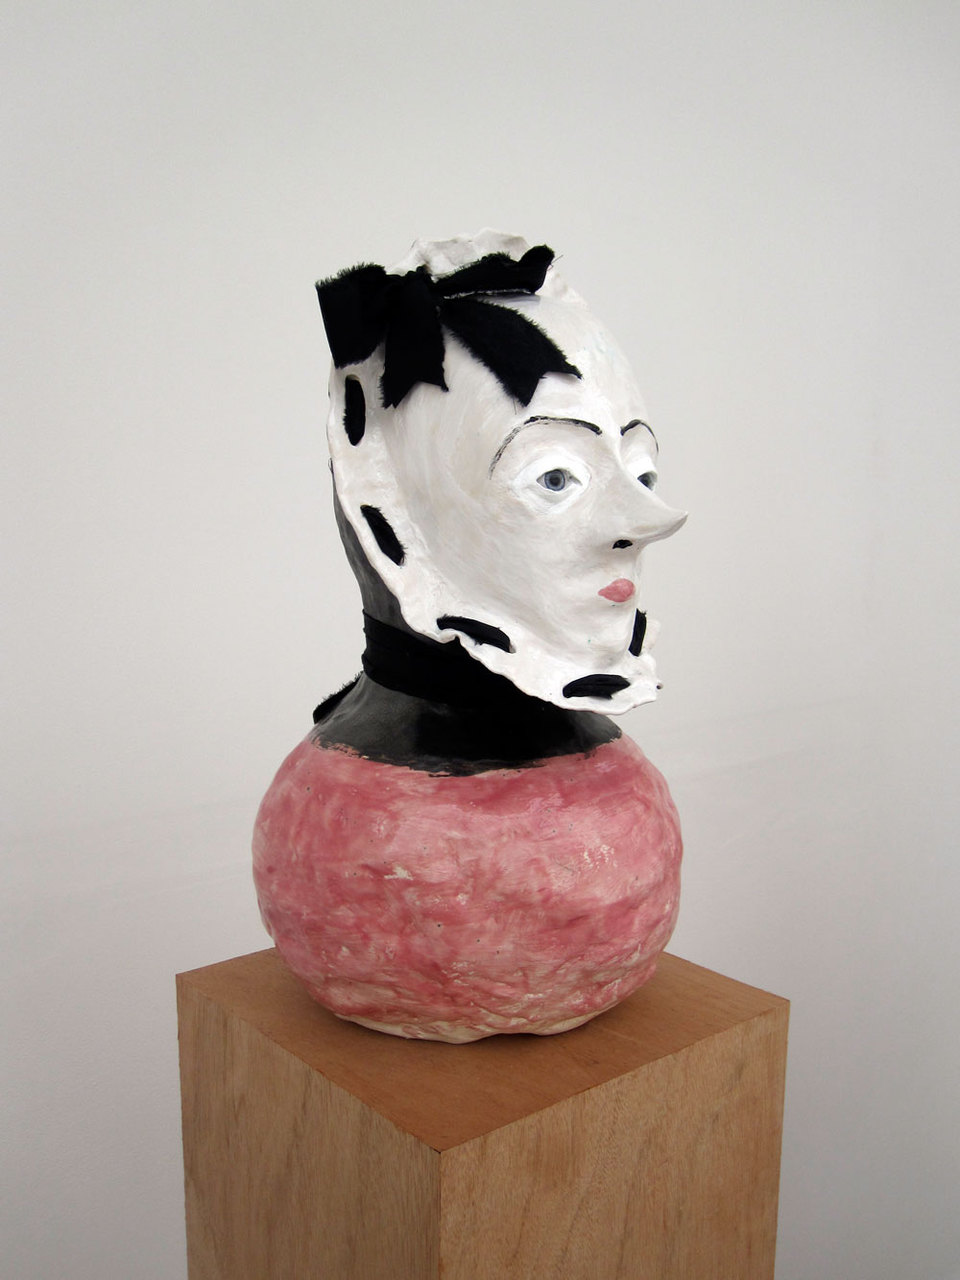 Jonathan Baldock, Dolly, 2009, Ceramic, cotton, glass eyes, clay, (h,1630mm x w.250mm x d.250mm), Cell Project Space